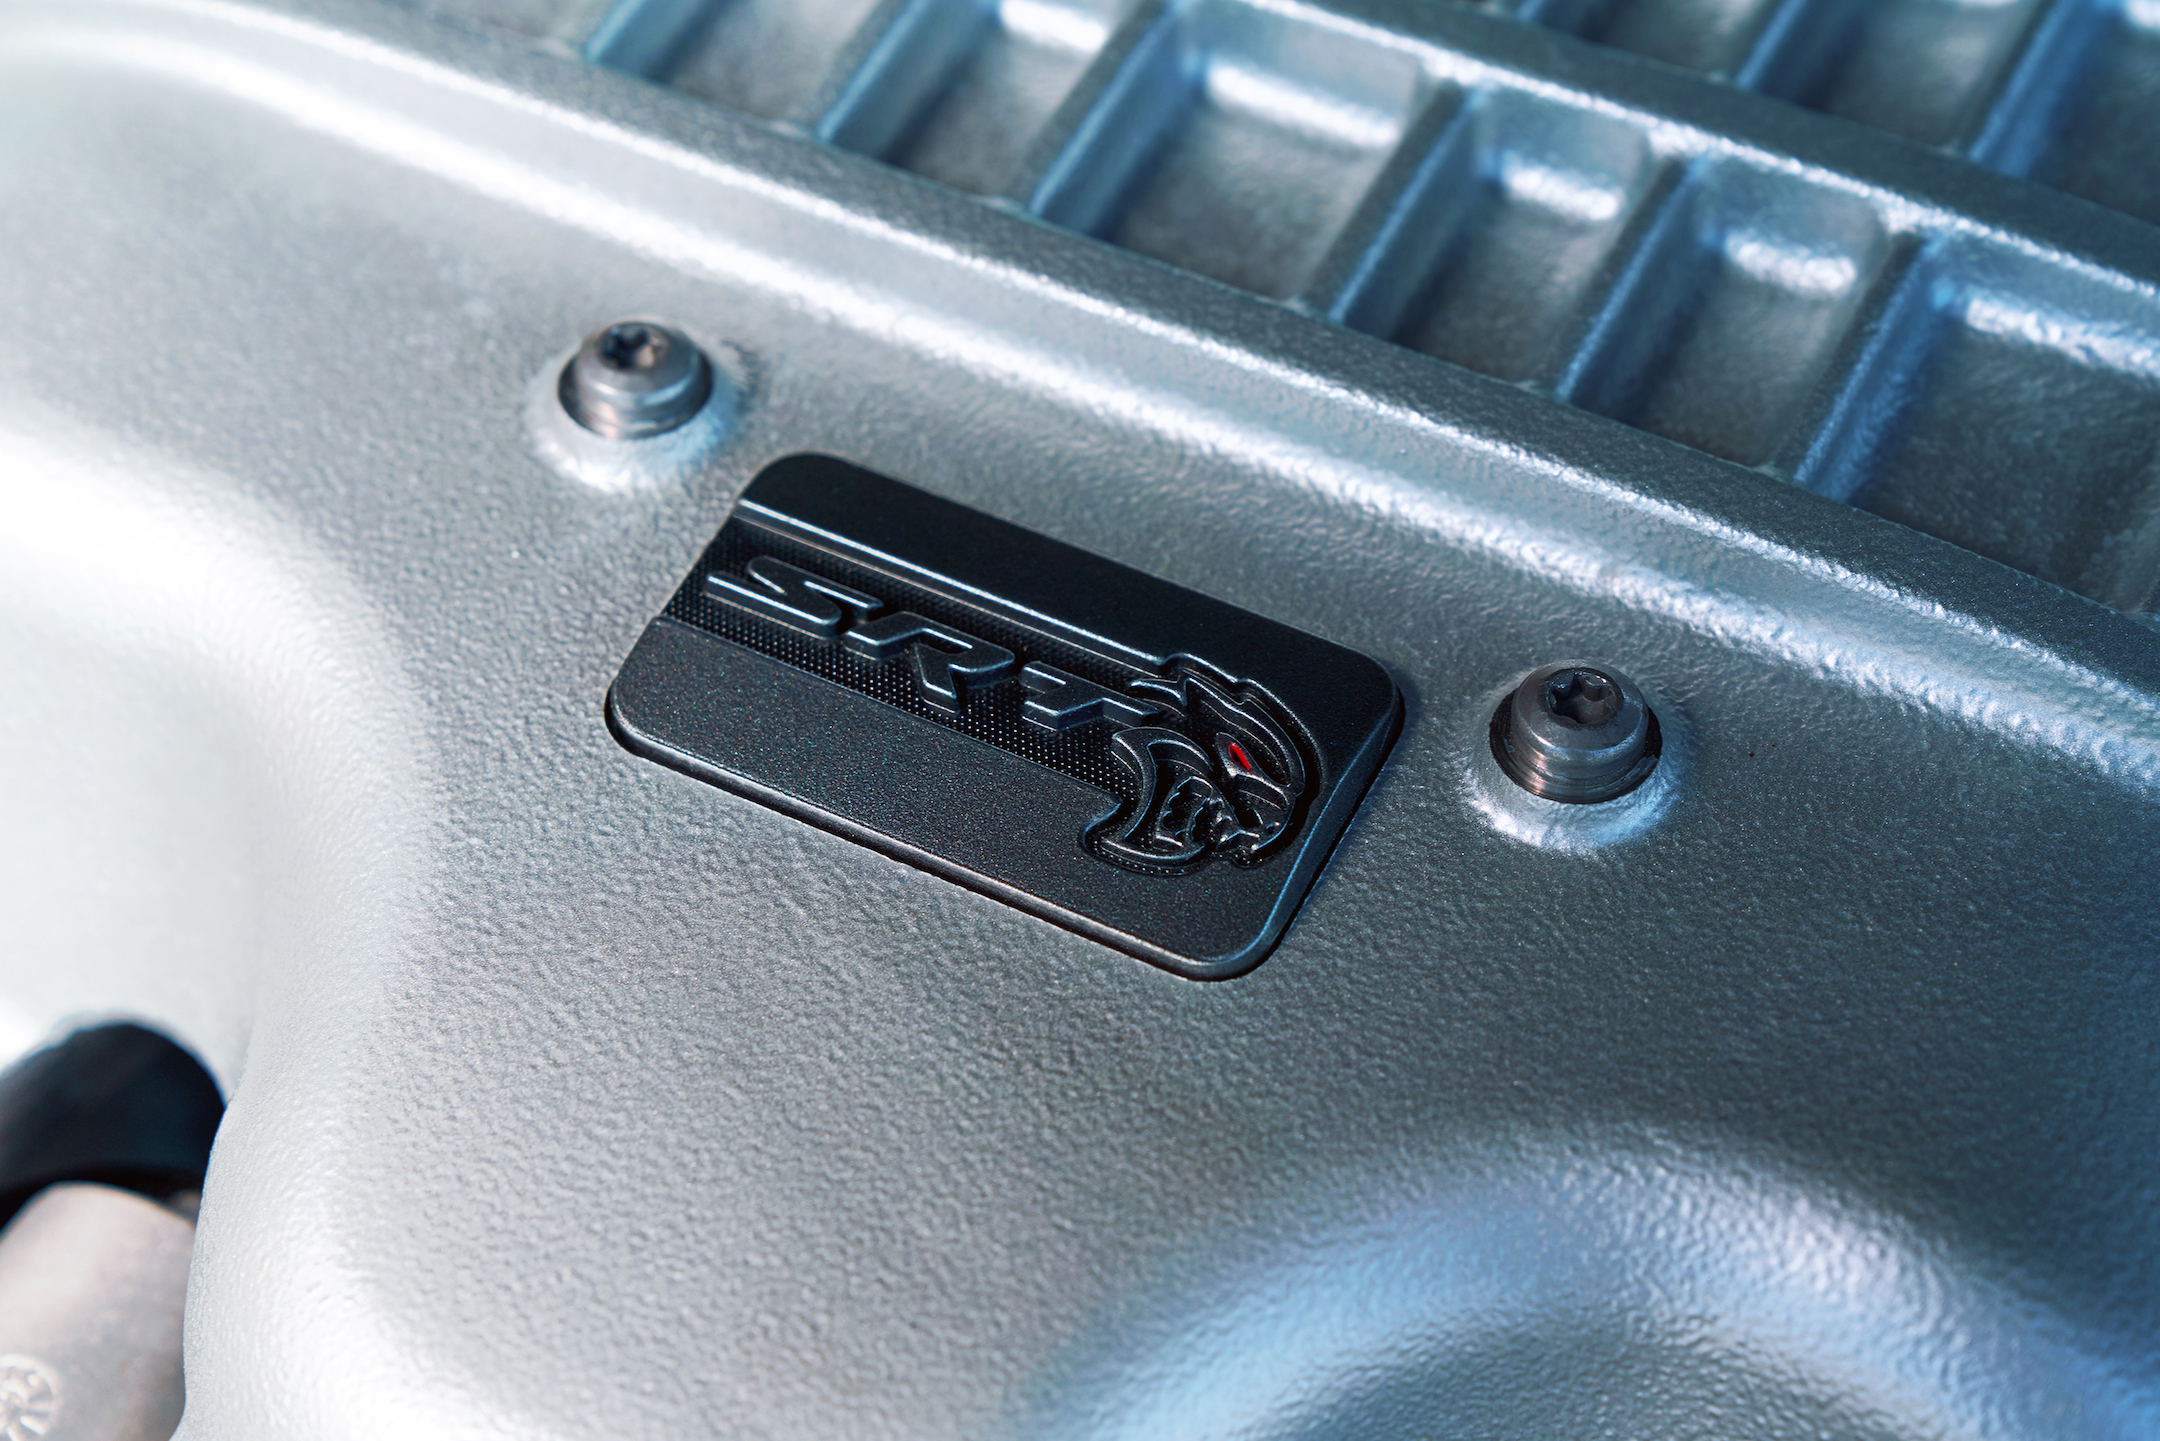 SRT Hellcat Redeye emblem located on the cover of the Supercharged 6.2L HEMI® V-8 engine